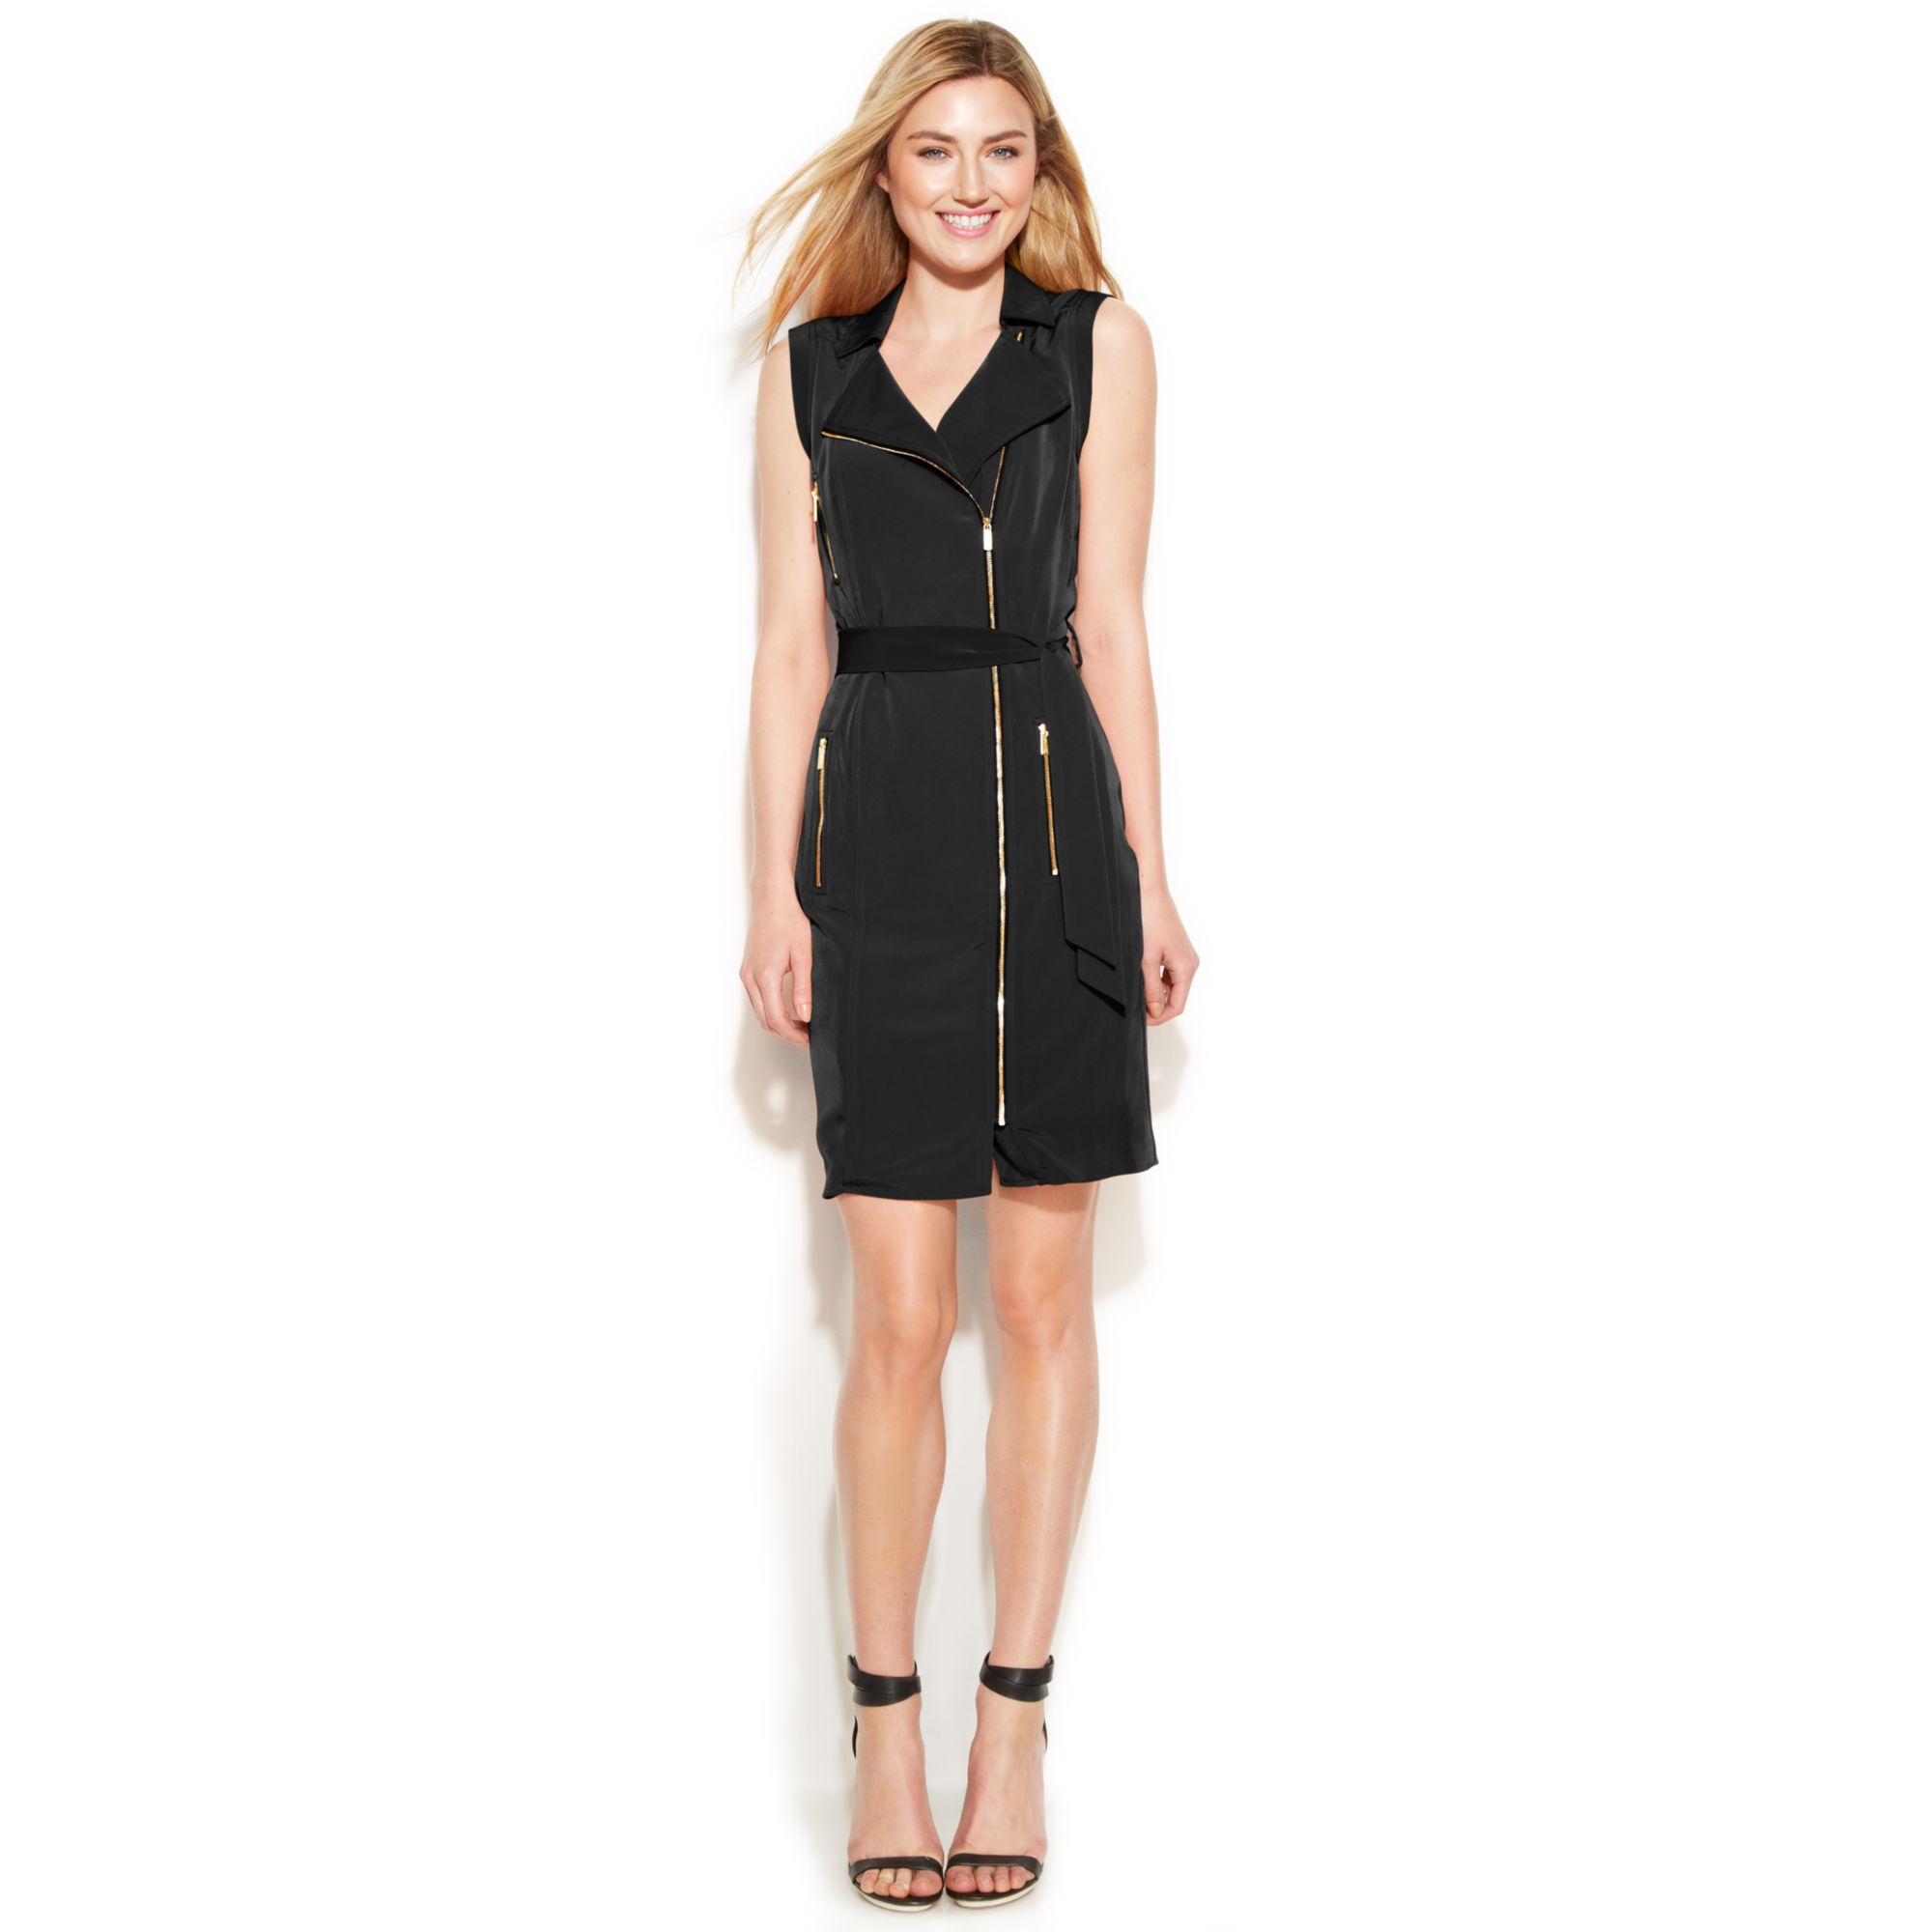 4959073b Calvin Klein Sleeveless Belted Moto Dress in Black - Lyst